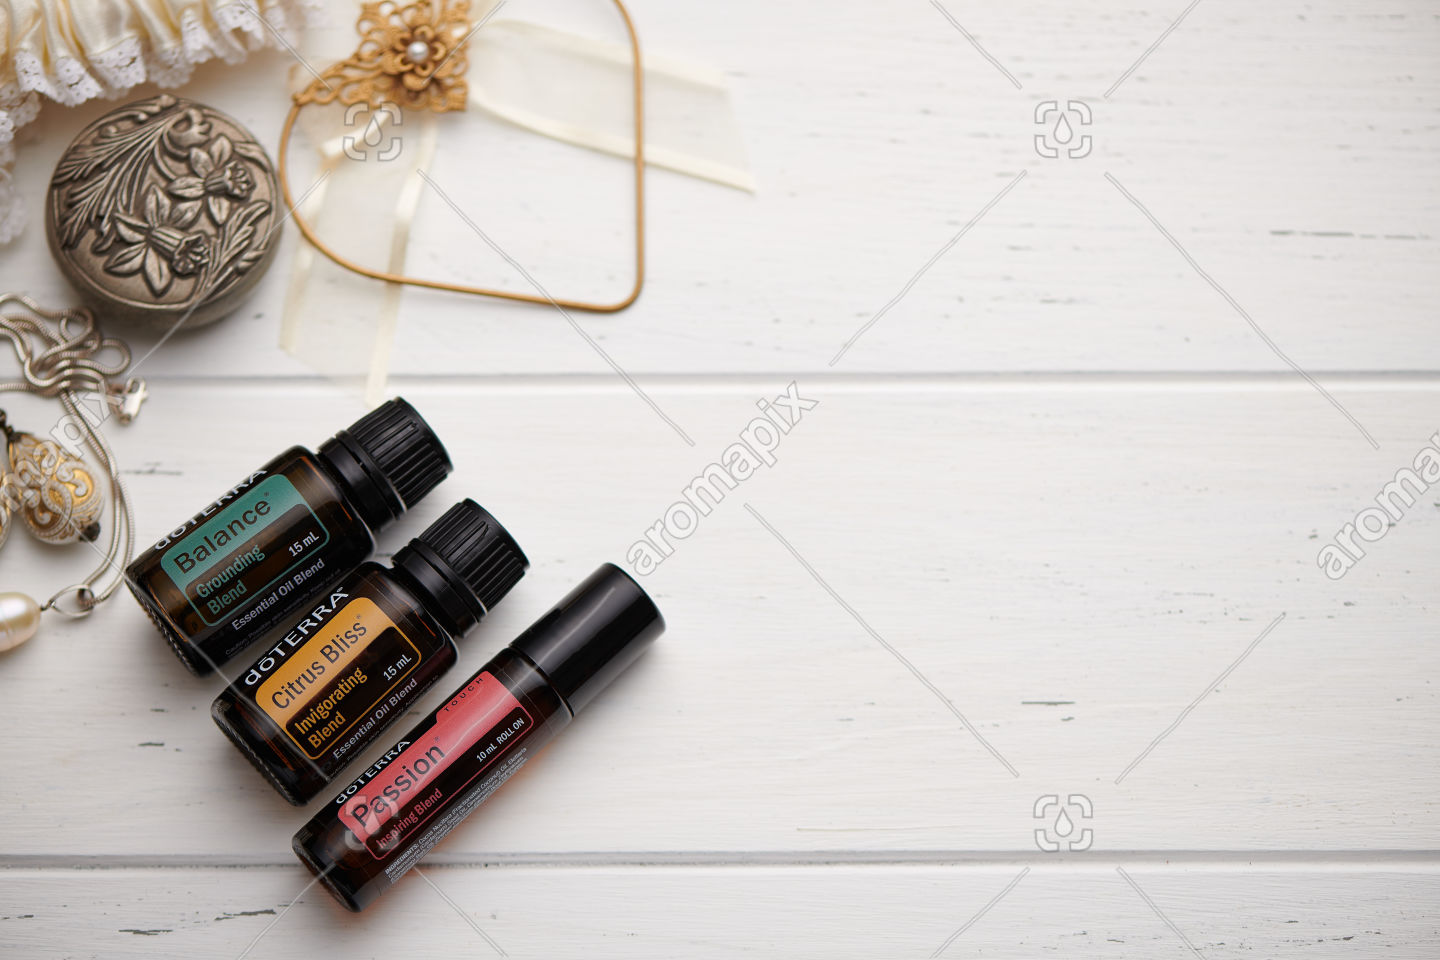 doTERRA Balance, Citrus Bliss and Passion Touch on white background